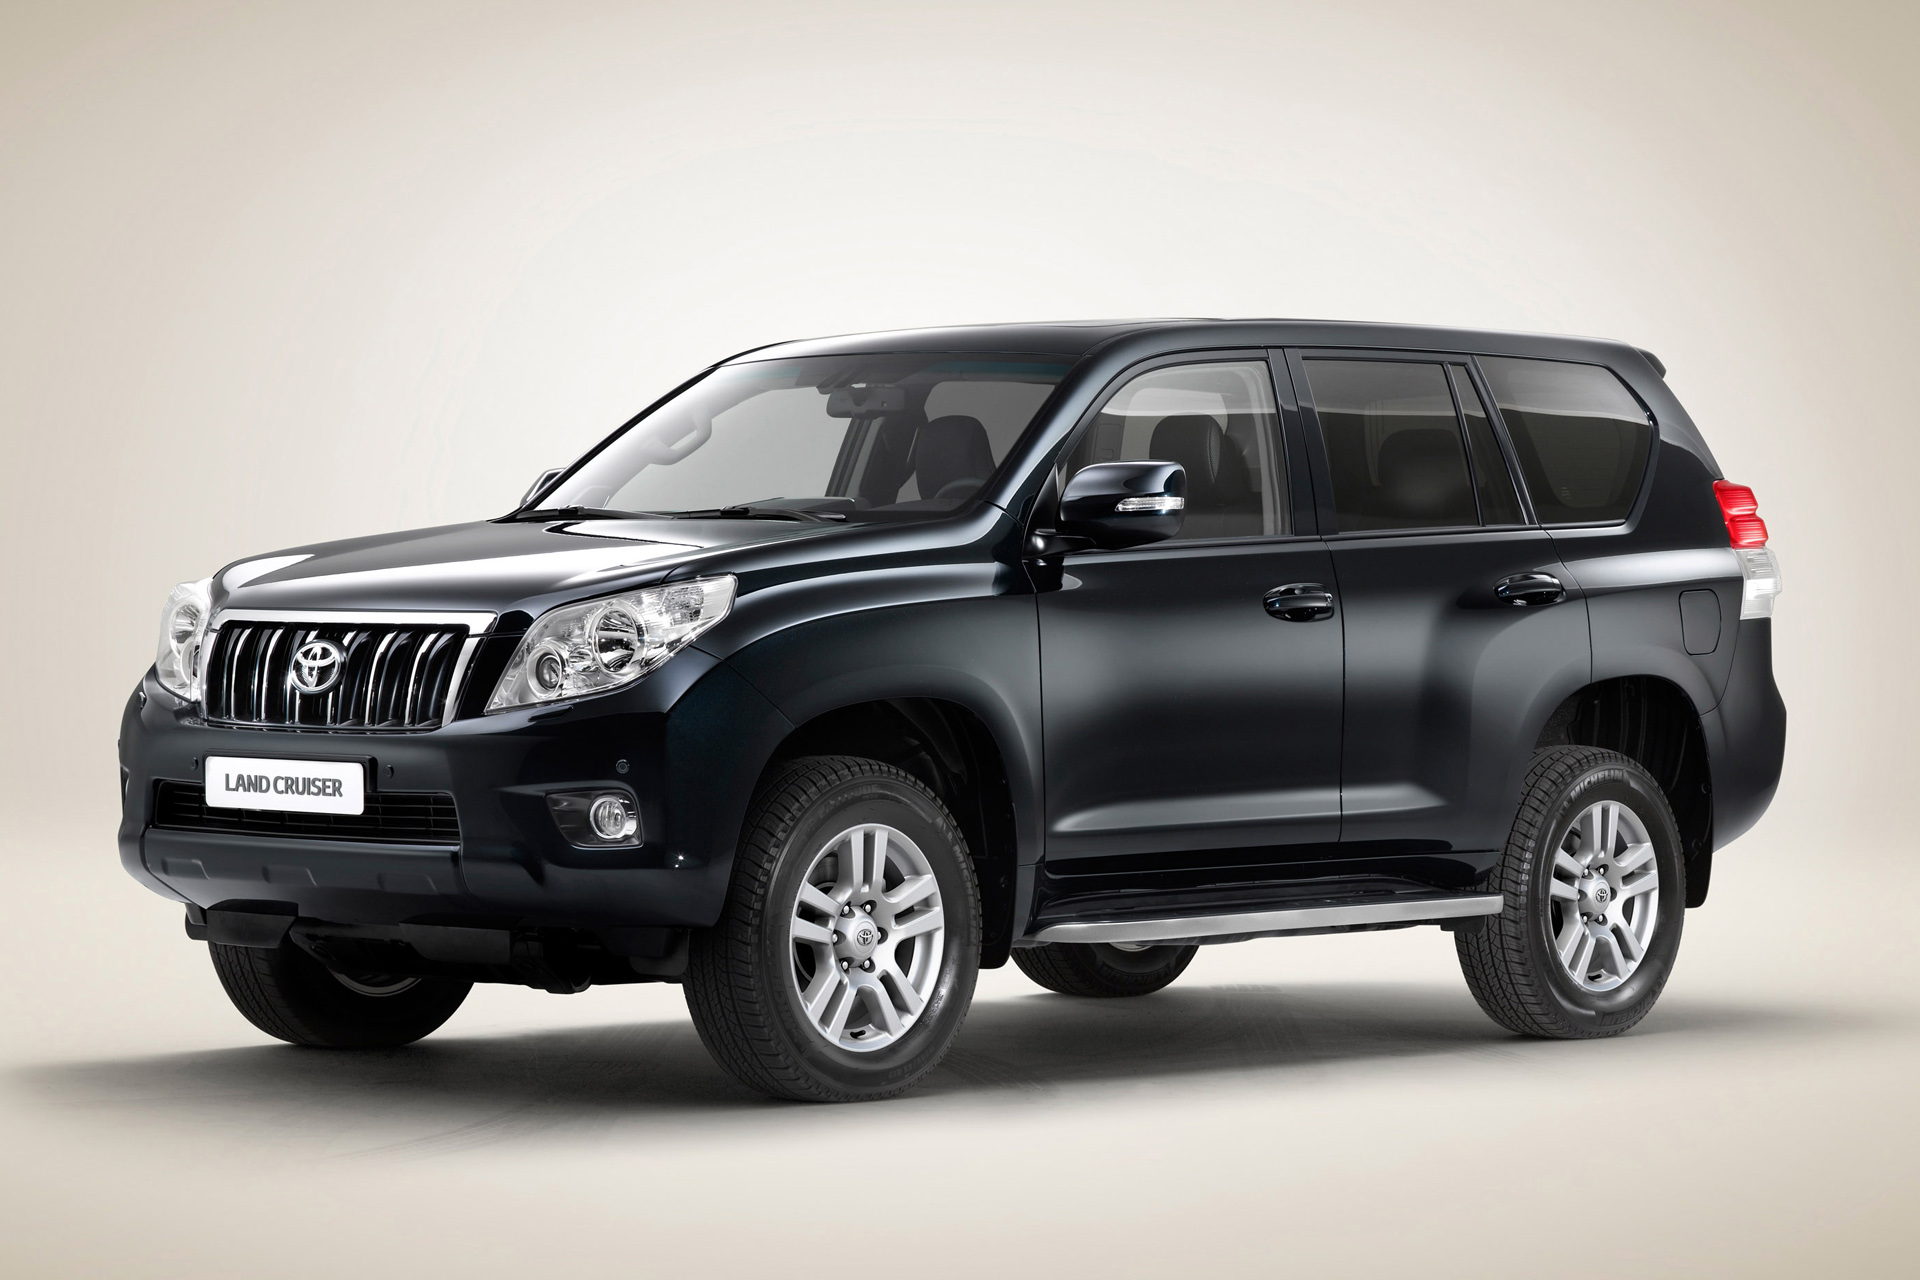 Toyota-Land_Cruiser_Prado_1_mp6_pic_67582